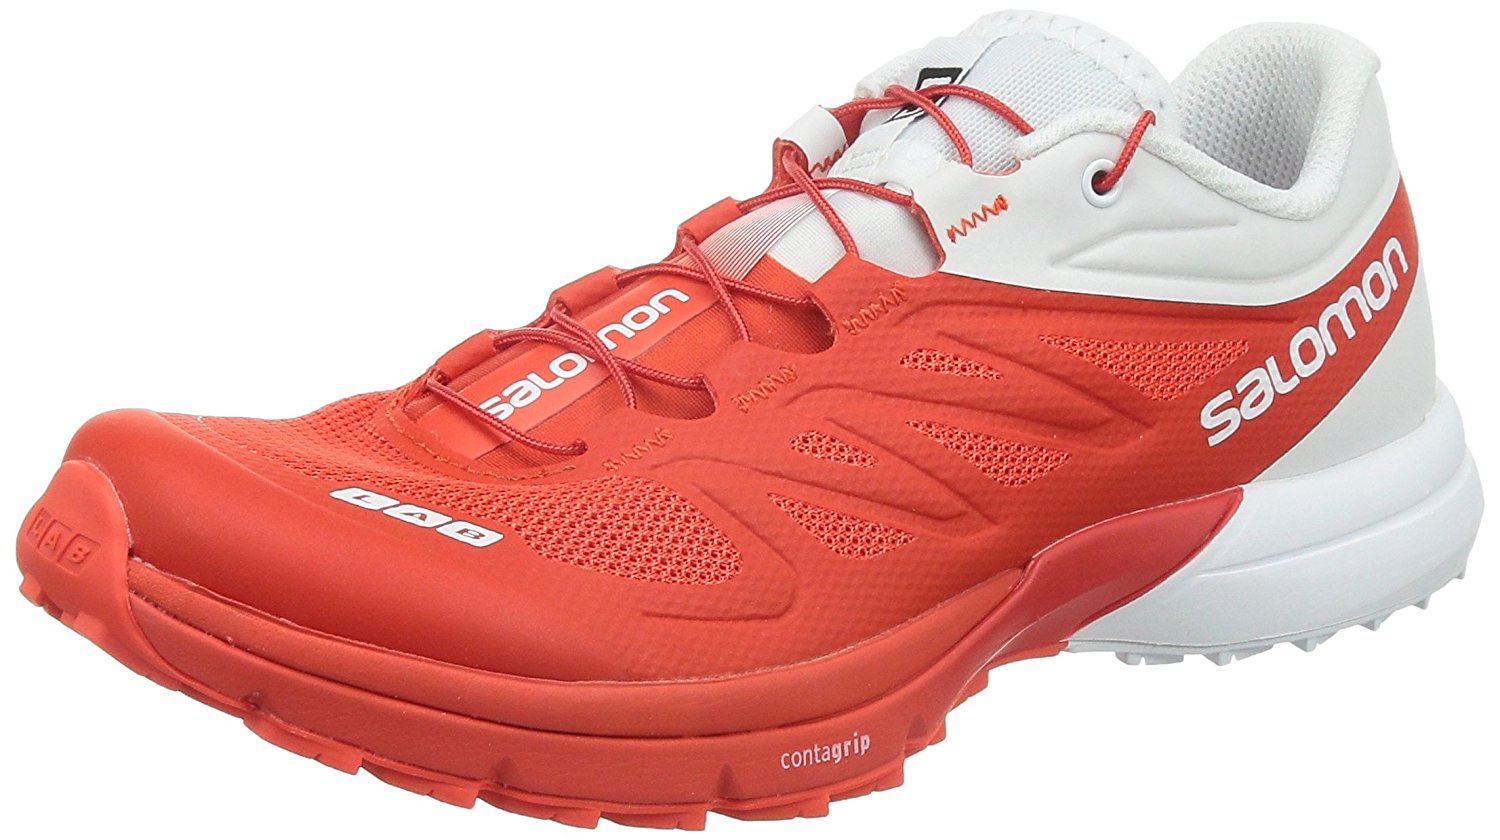 new concept 66d5e c29c3 ... Salomon S-Lab Sense 4 Ultra Running Shoe - Men s Racing Red 9 ...